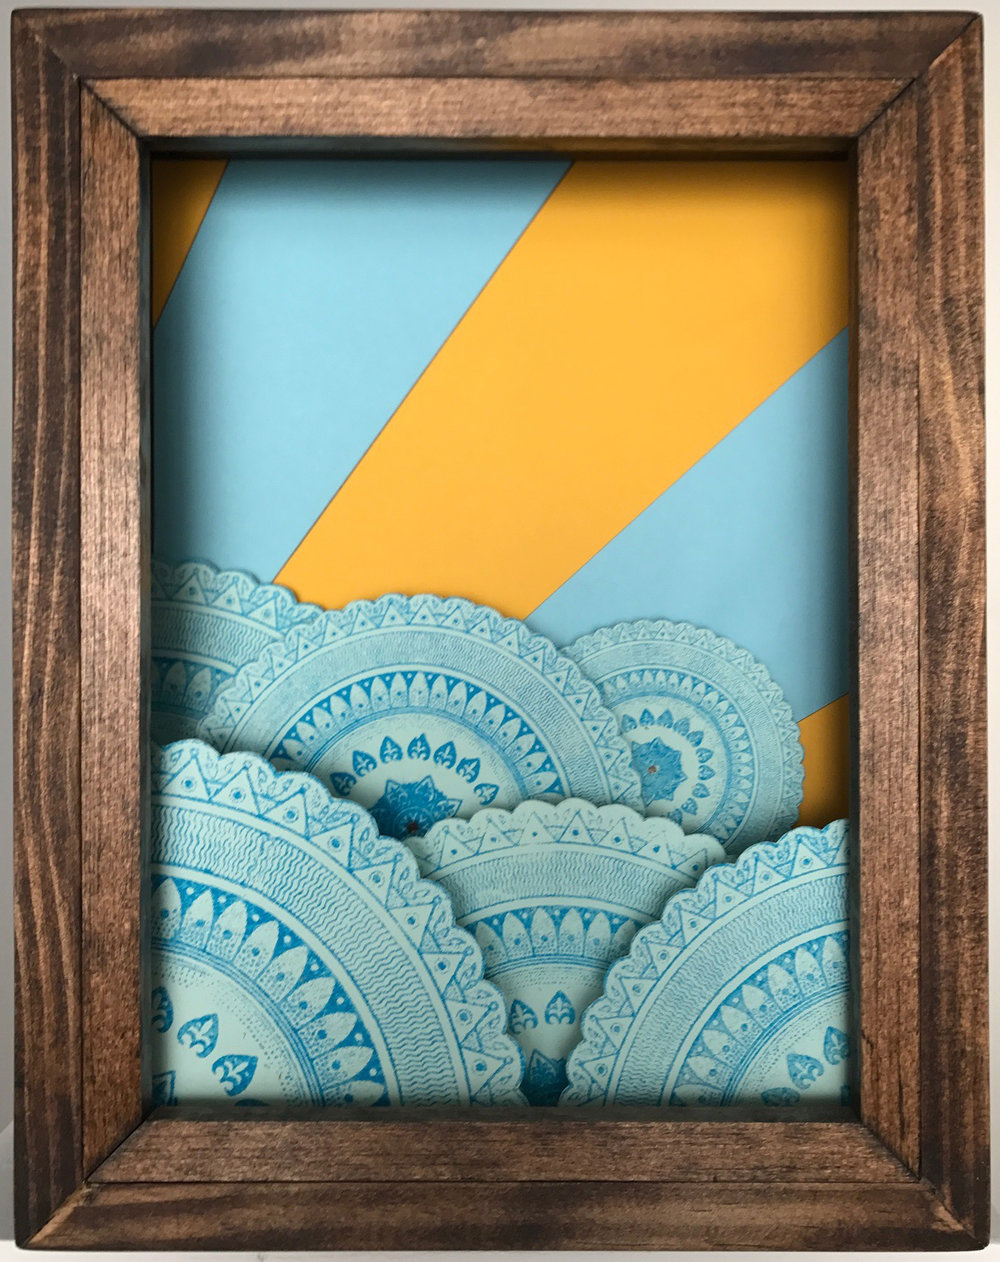 Machination 2 Screen print on paper and cardboard in wooden shadow box 11 x 14 x 3.5 inches